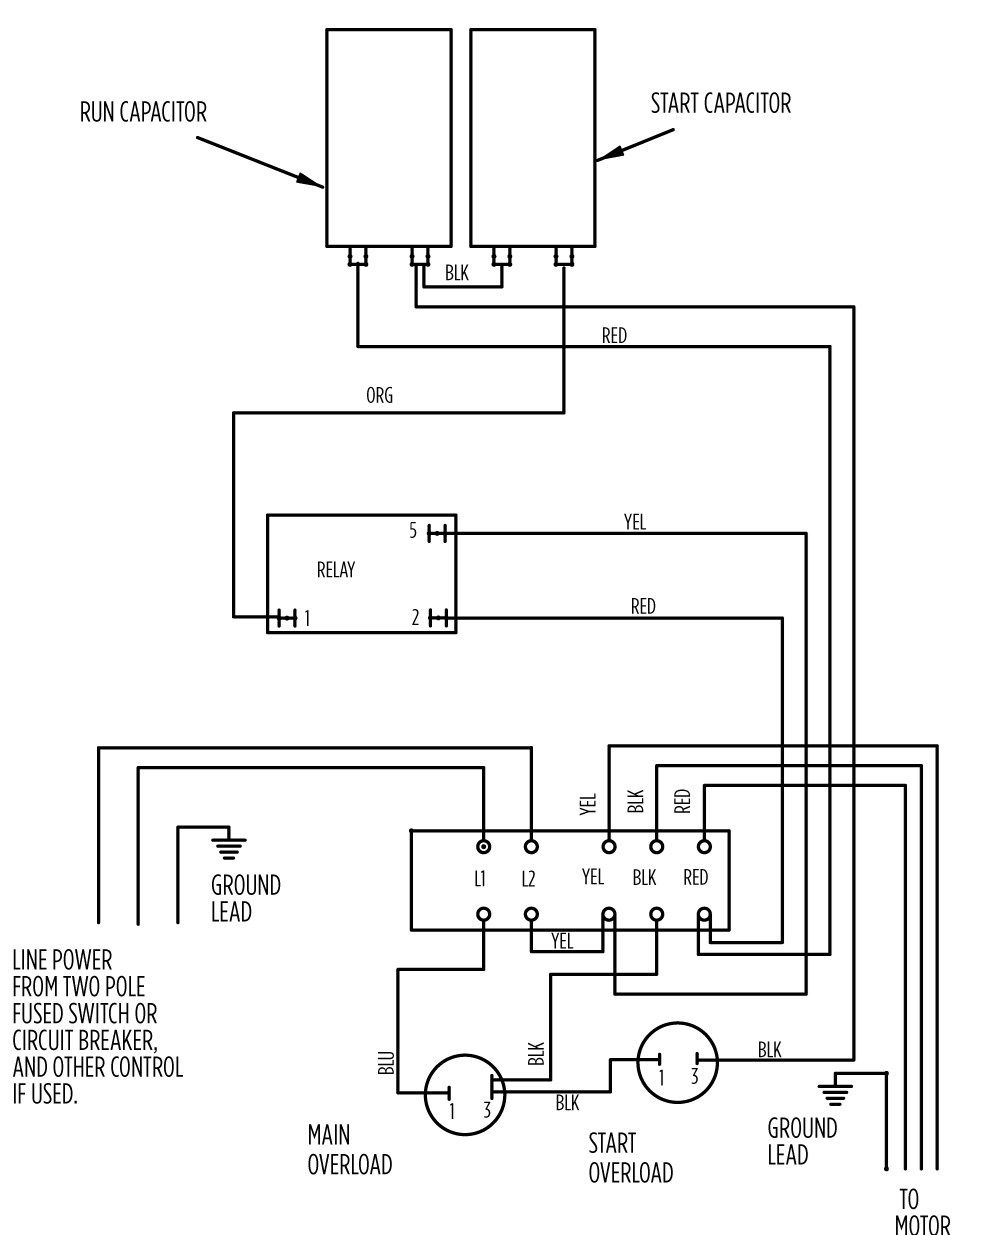 wiring diagram for 220 volt submersible pump wiring diagram 220 submersible pump wiring diagram [ 1000 x 1235 Pixel ]